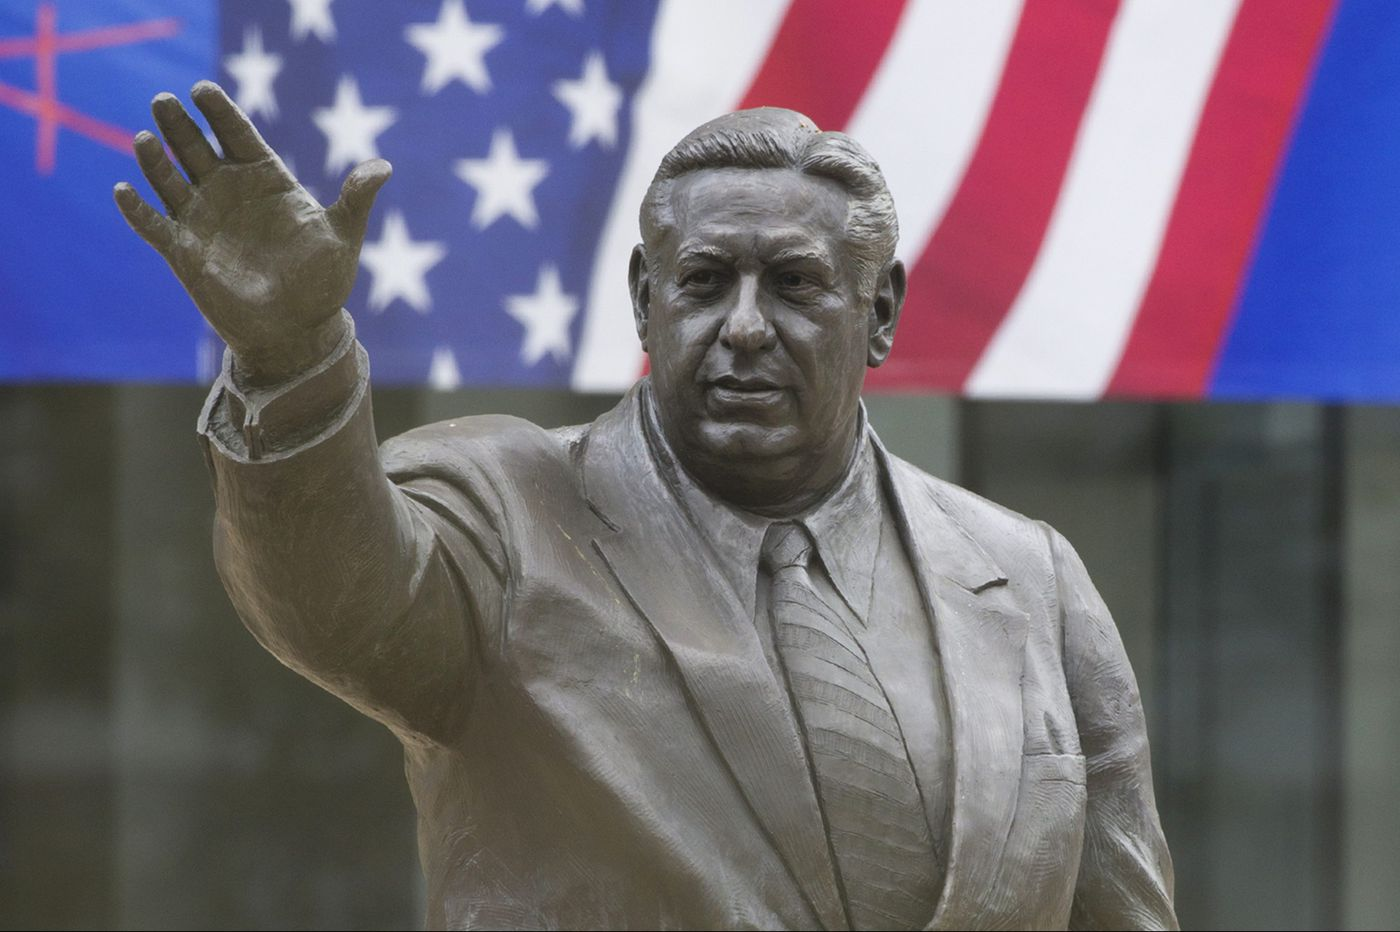 The politics behind the Frank Rizzo statue reprieve   Stu Bykofsky